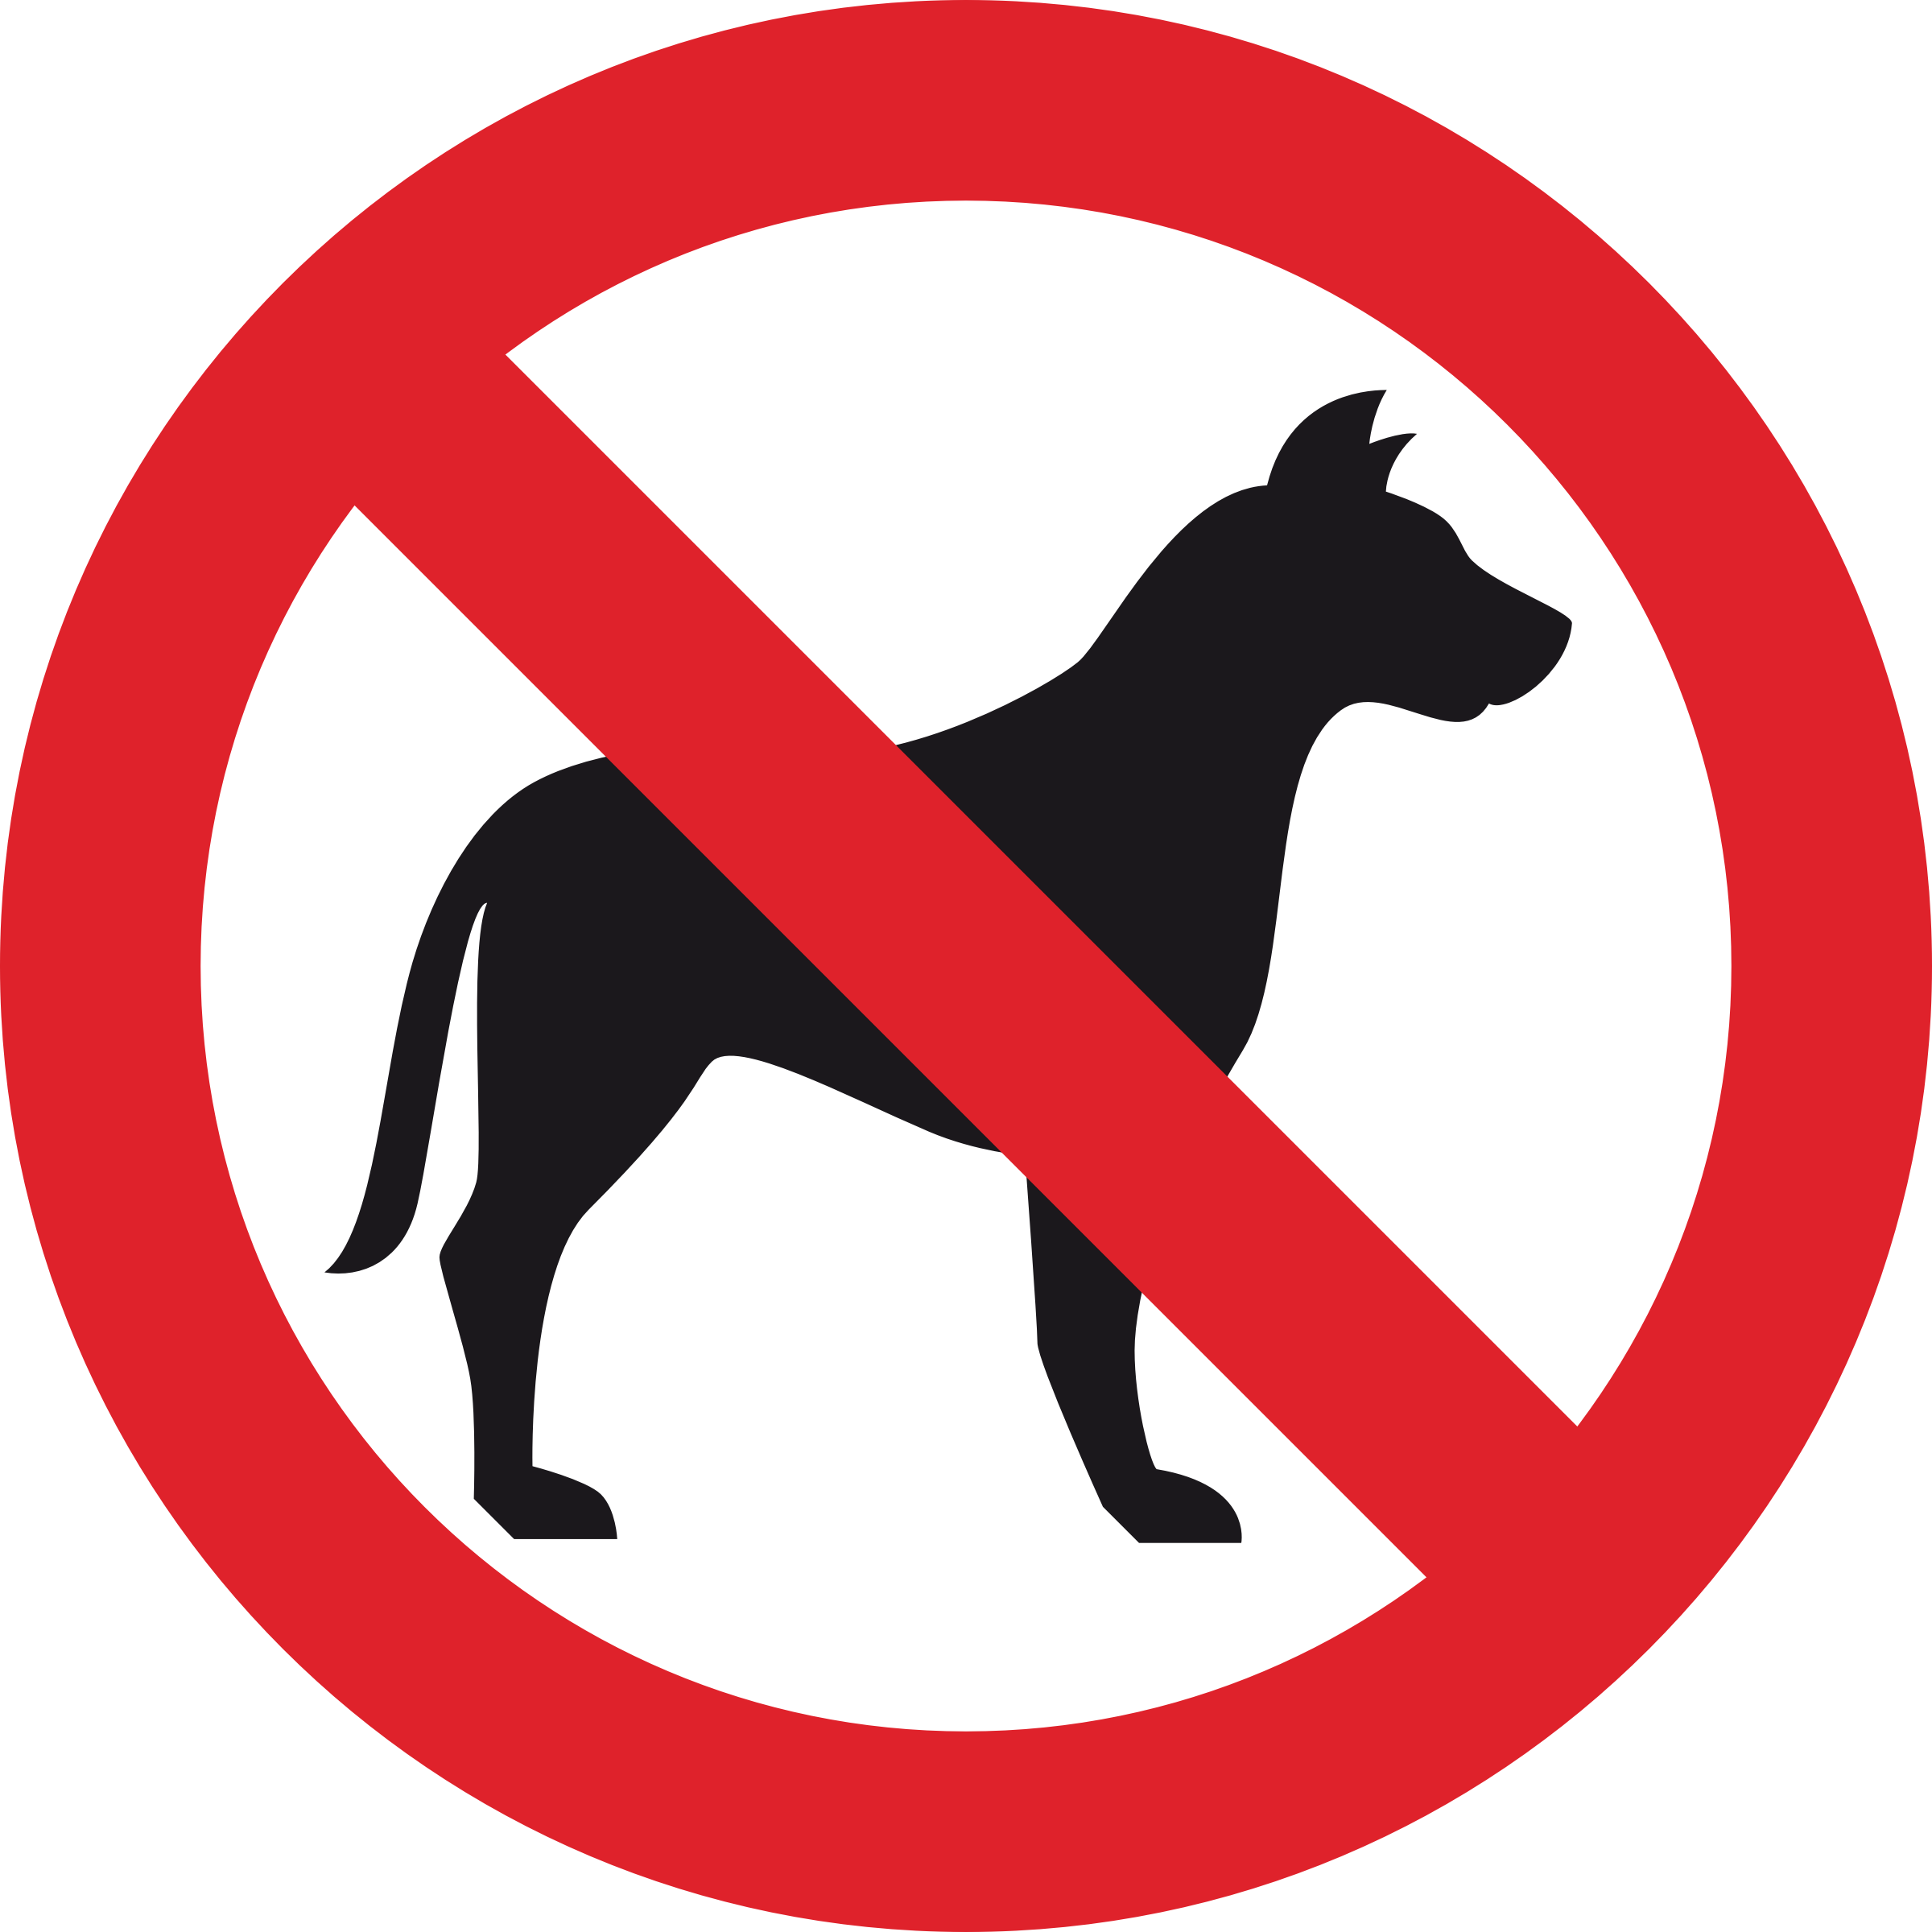 No dog sign big. Clipart dogs red